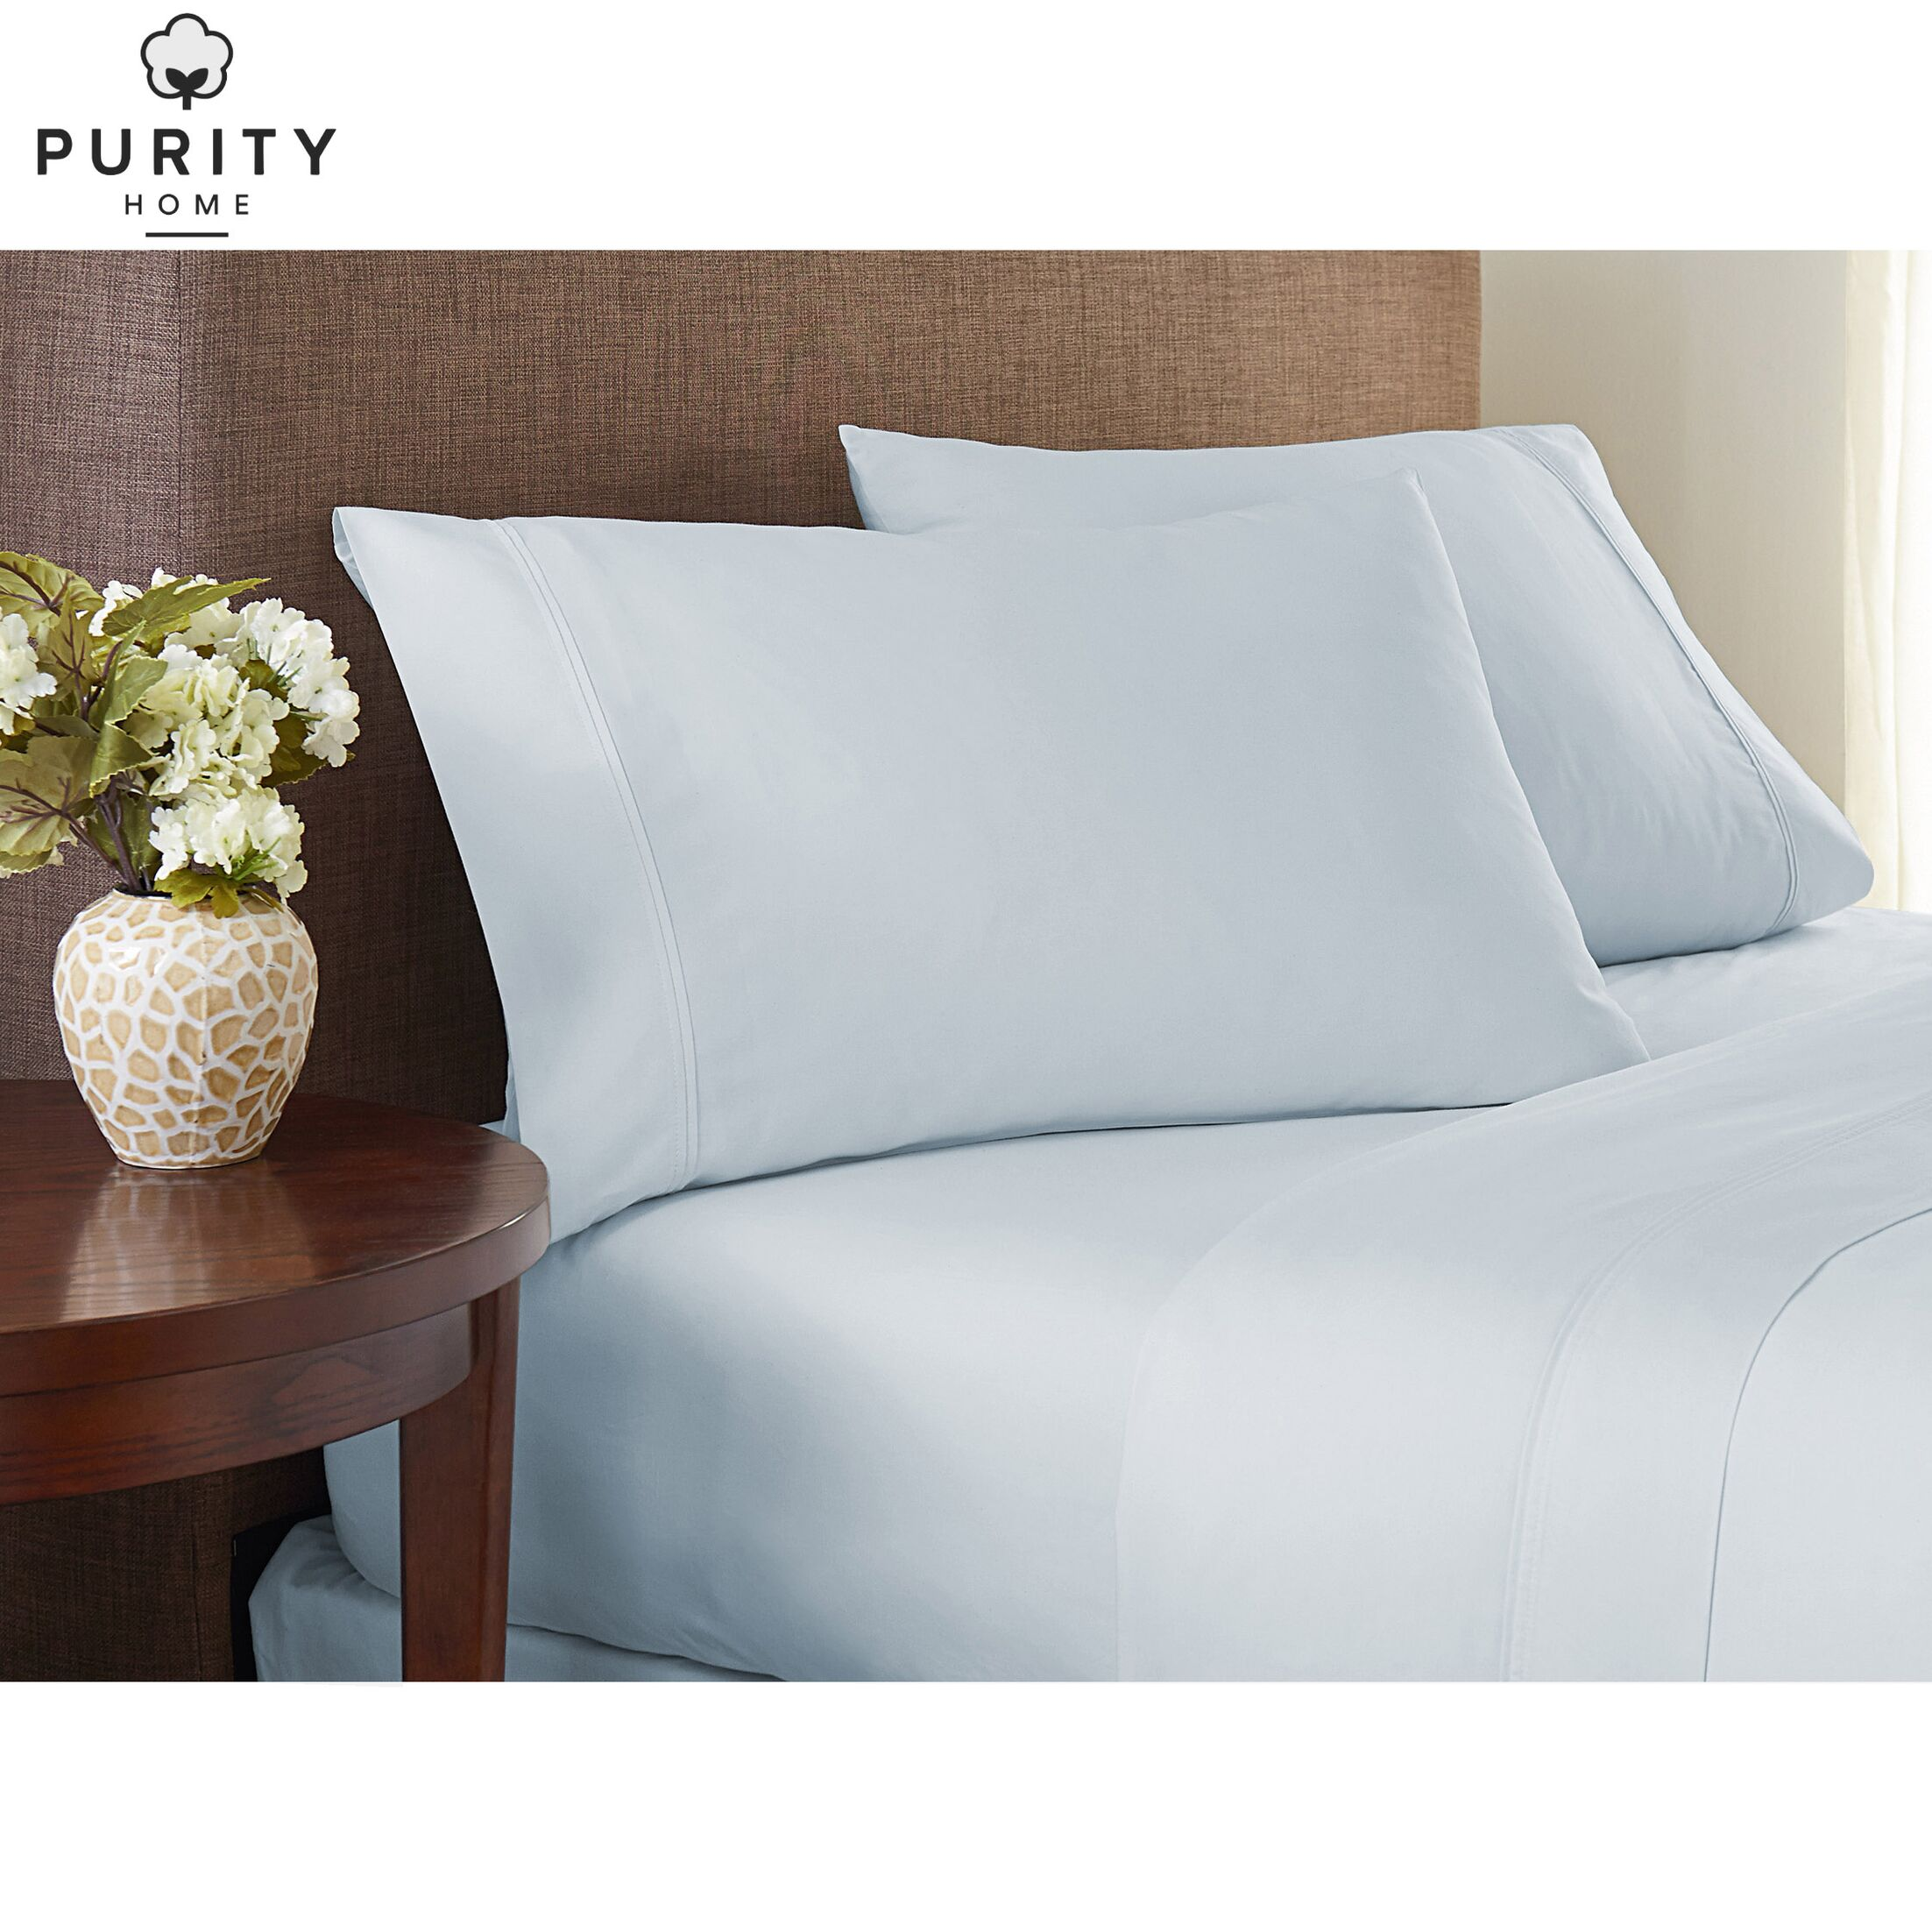 Purity Home 4 Piece Ultrasoft 1000 Thread Count Sheet Set Color: Aqua, Size: Queen